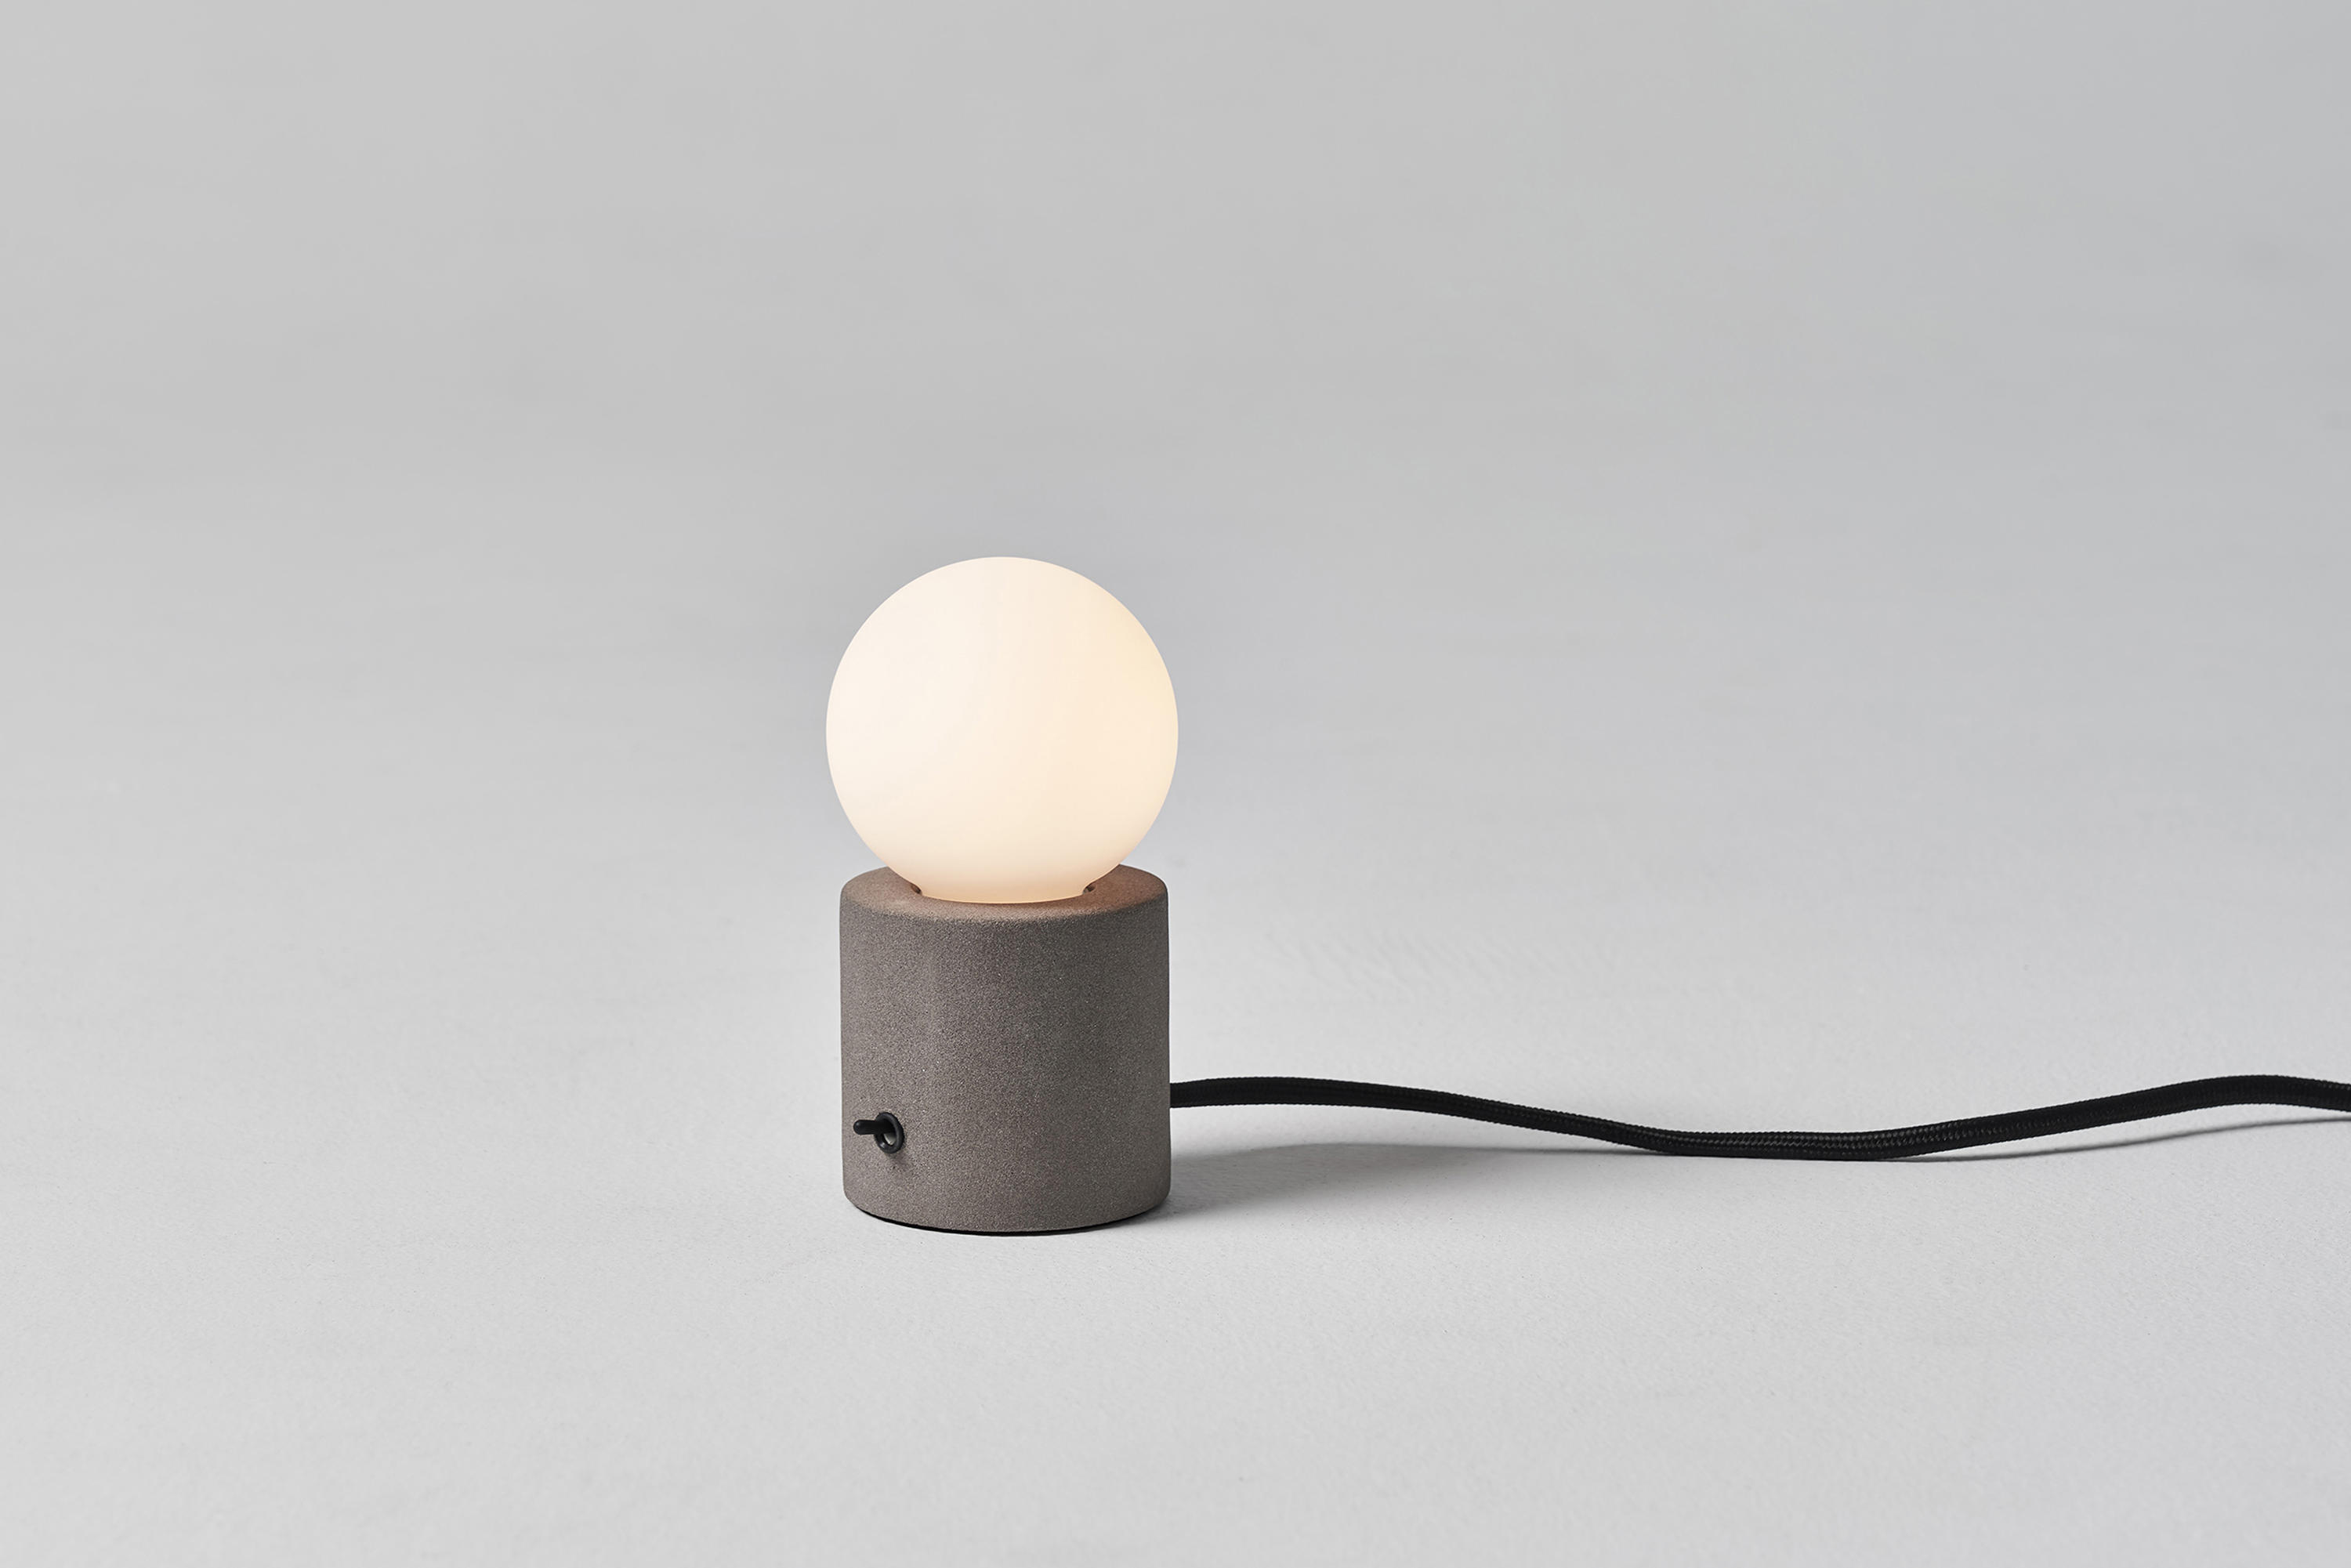 Muse Lamp by SEED Design